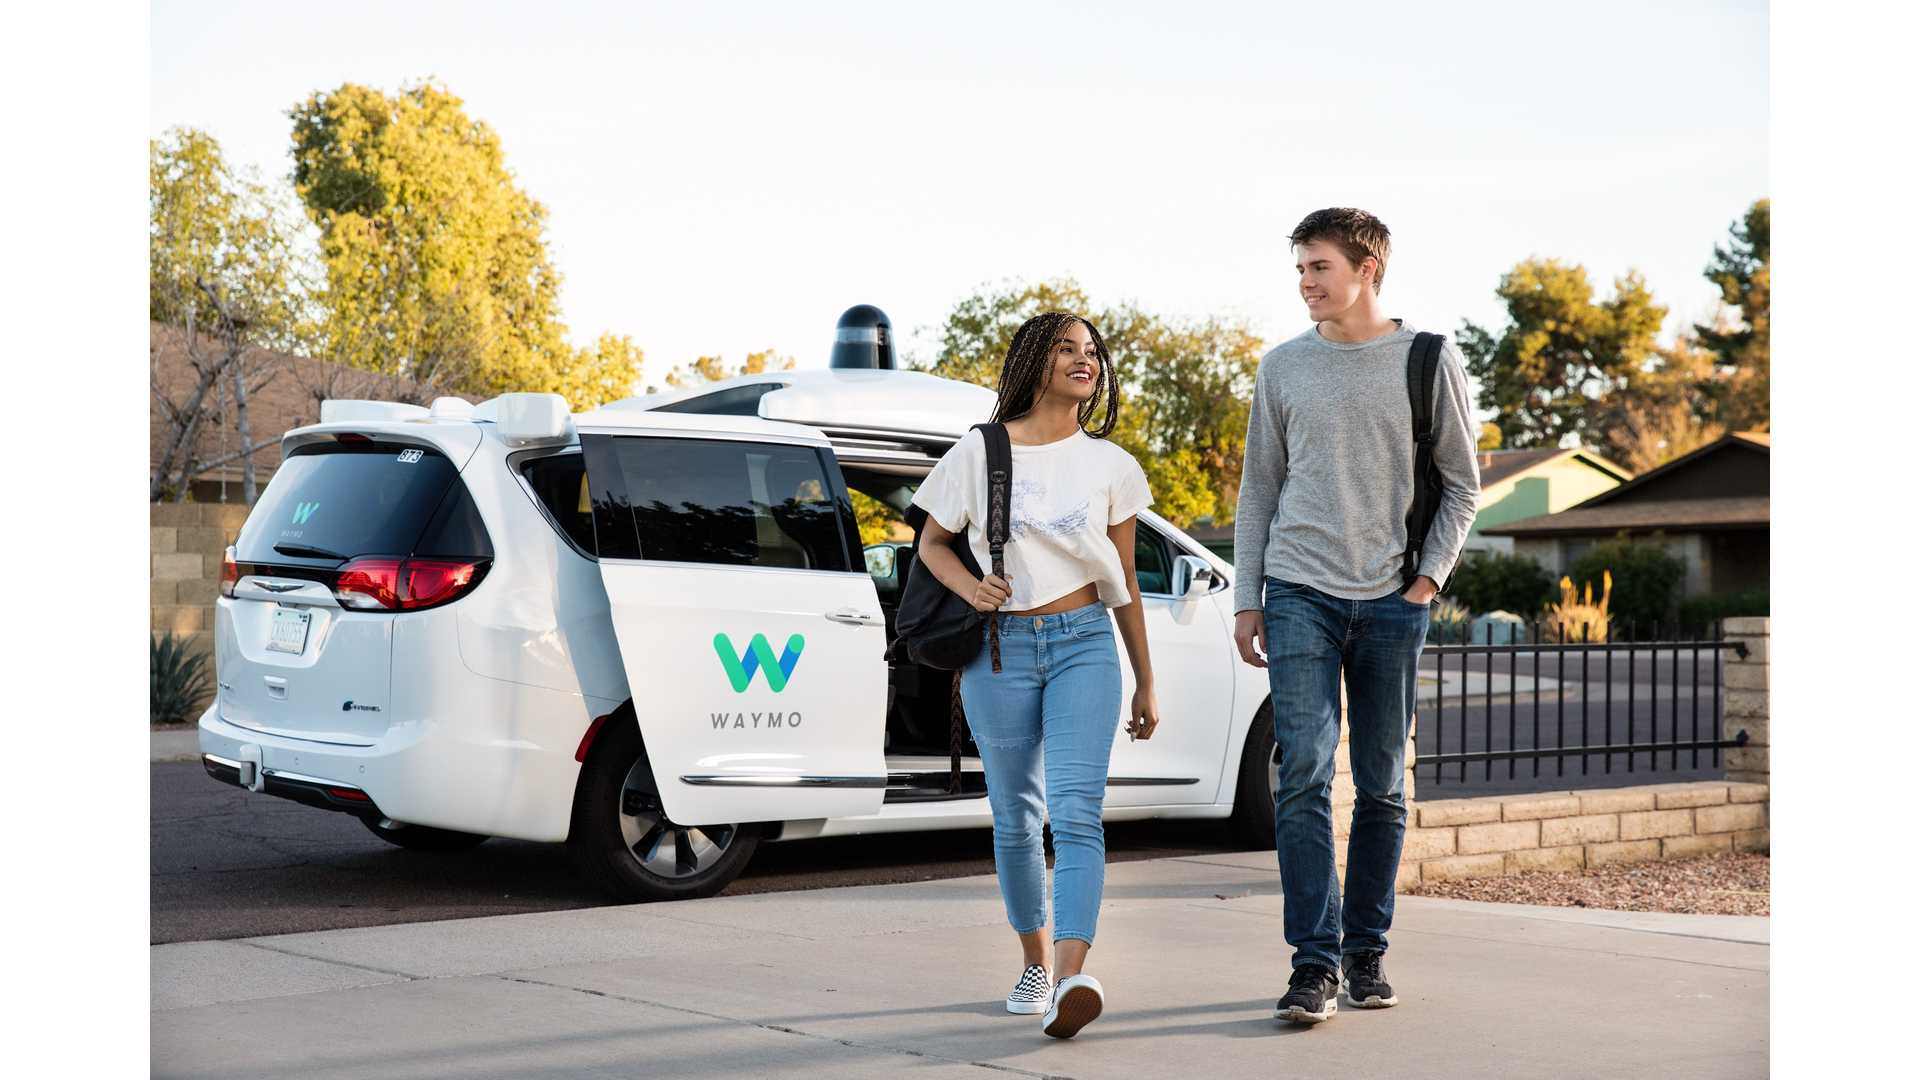 Up To 62,000 Chrysler Pacifica Hybrid Minivans Will Join Waymo